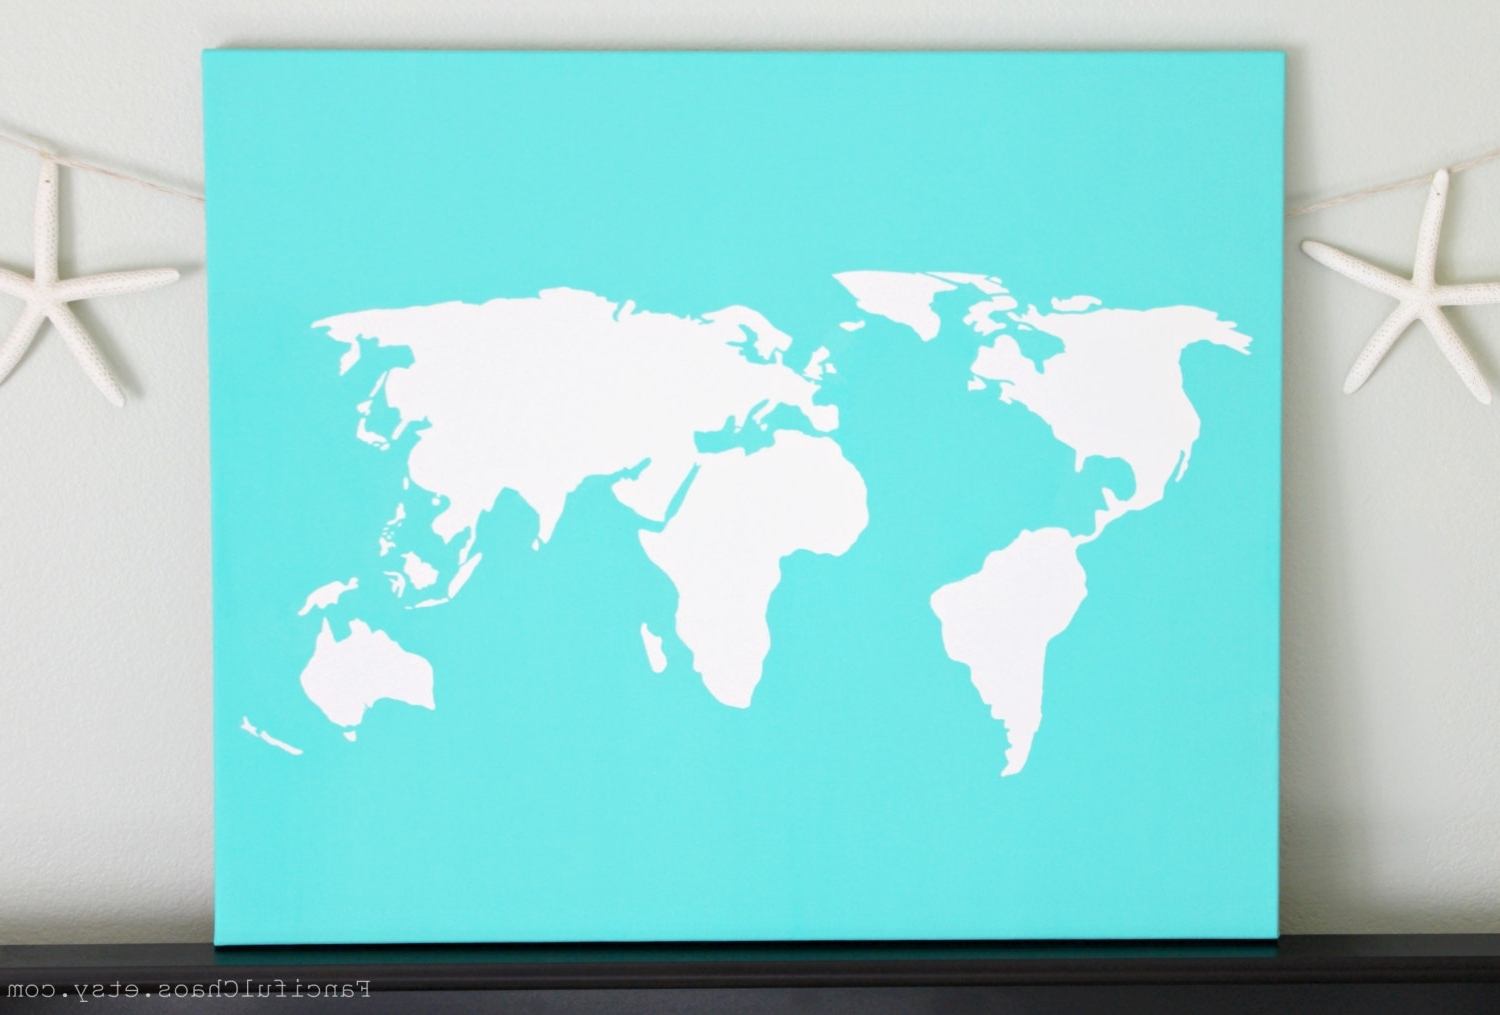 Diy World Map Wall Art Within Well Known Il Fullxfull 540289865 6G0P Jpg Version 0 For Diy World Map Wall (View 6 of 15)